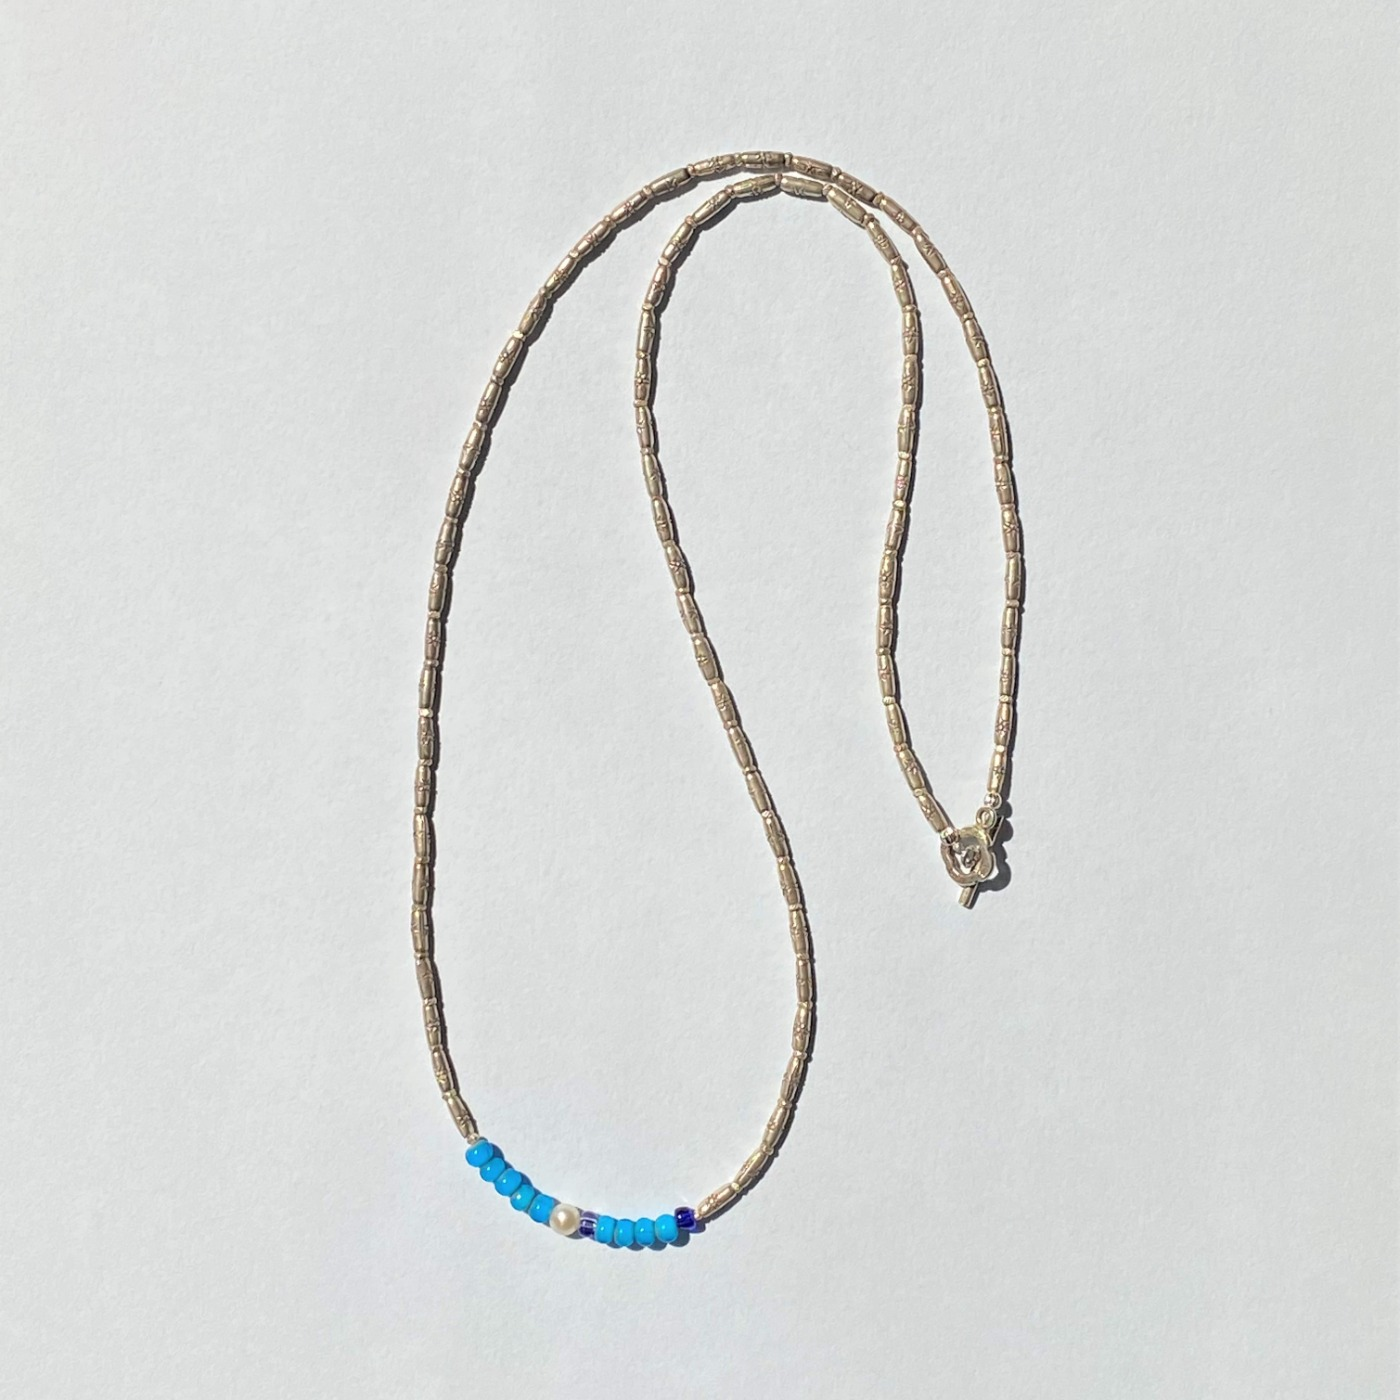 Karen Silver Long Necklace